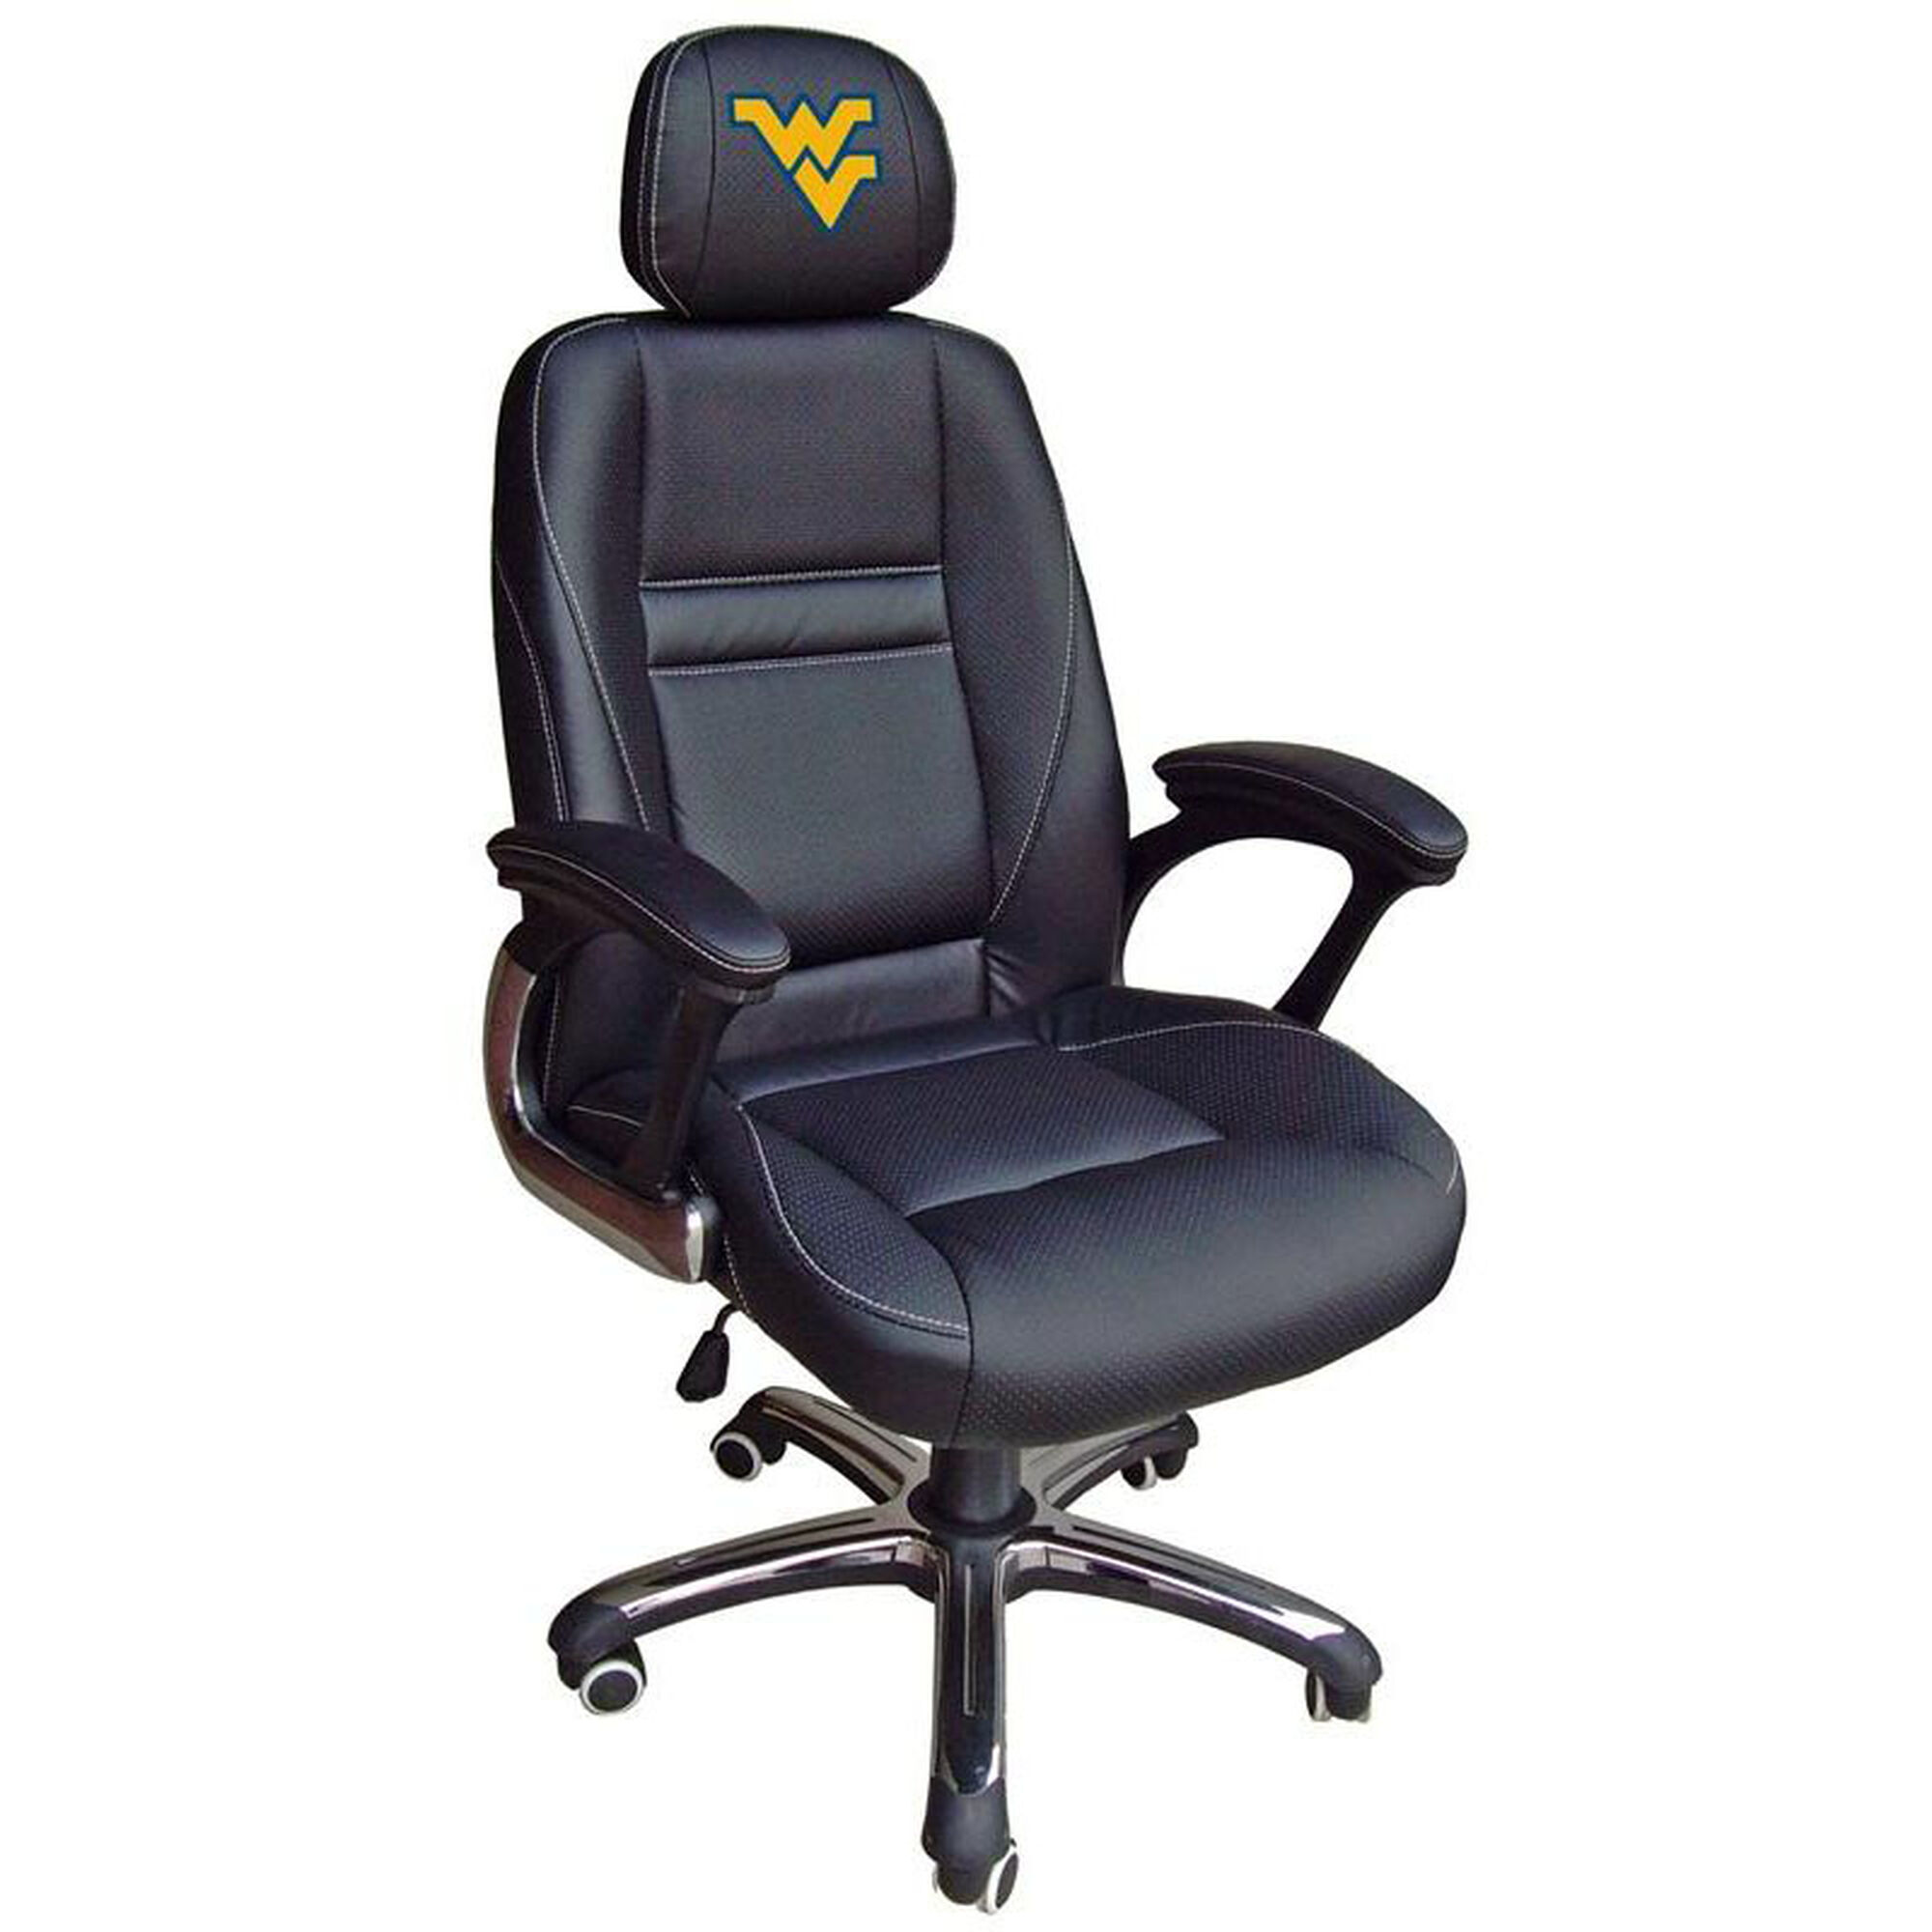 Our West Virginia Mountaineers Office Chair Is On Sale Now